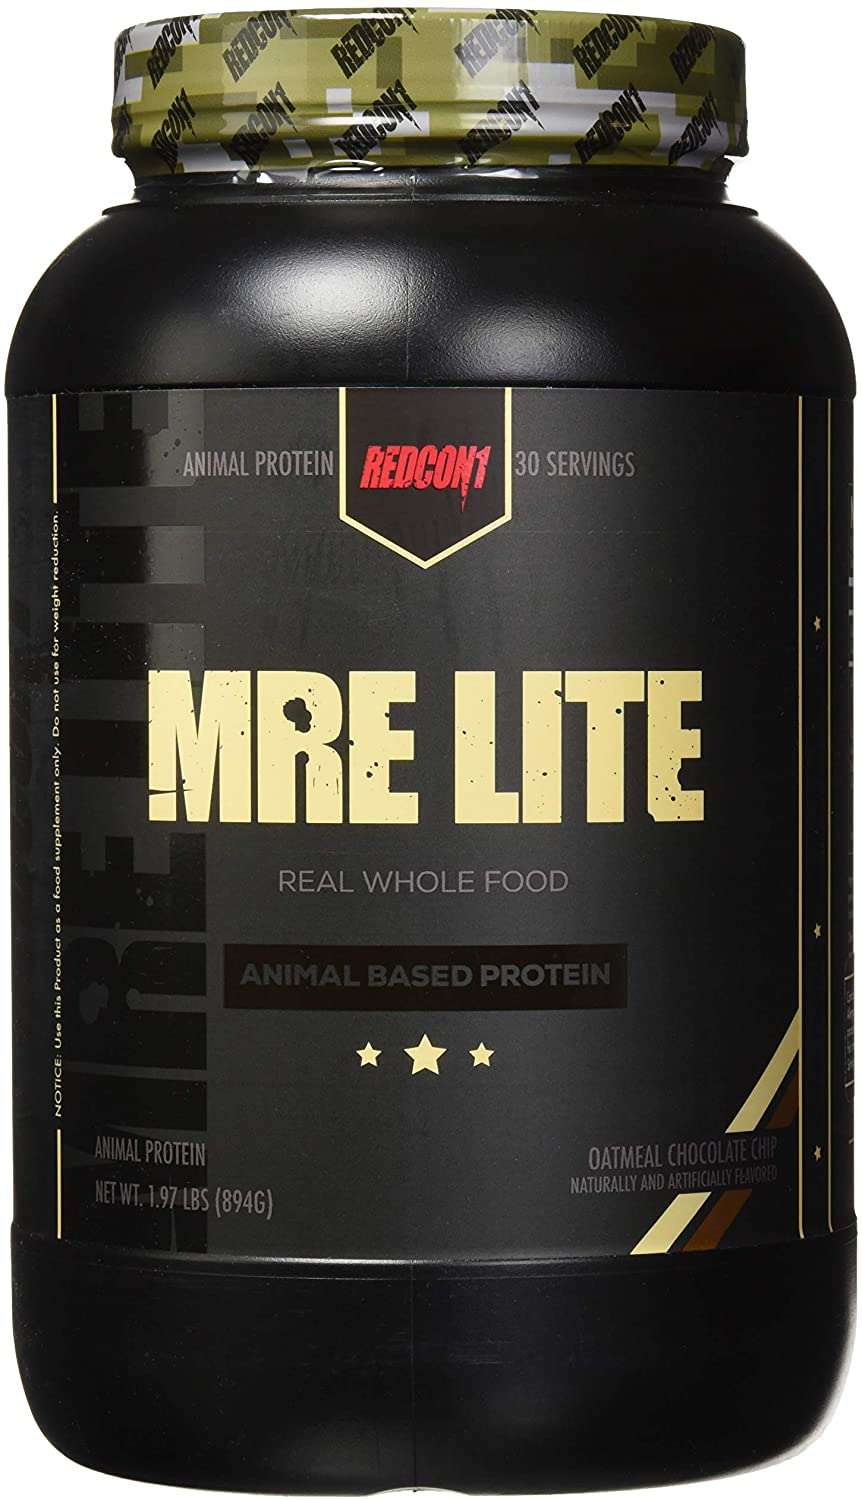 Animal Based Protein Powder